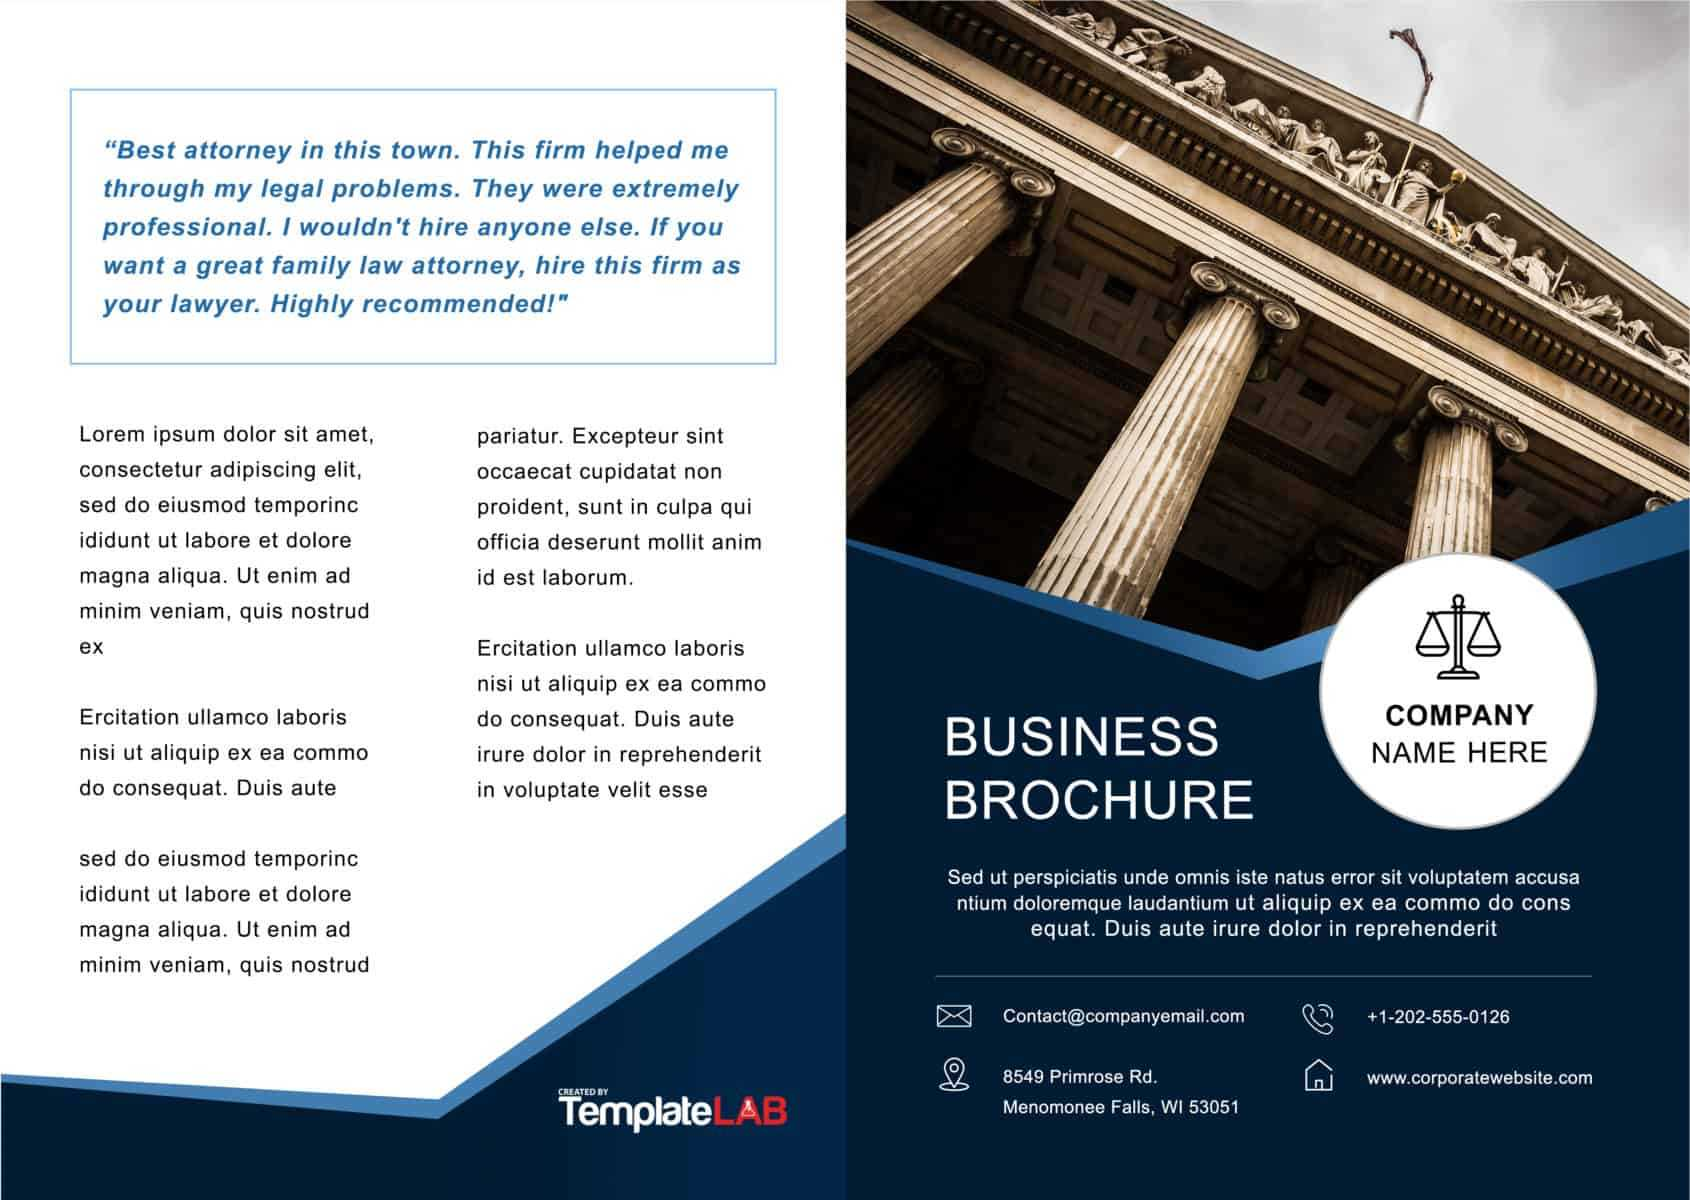 33 Free Brochure Templates (Word + Pdf) ᐅ Templatelab In One Page Brochure Template